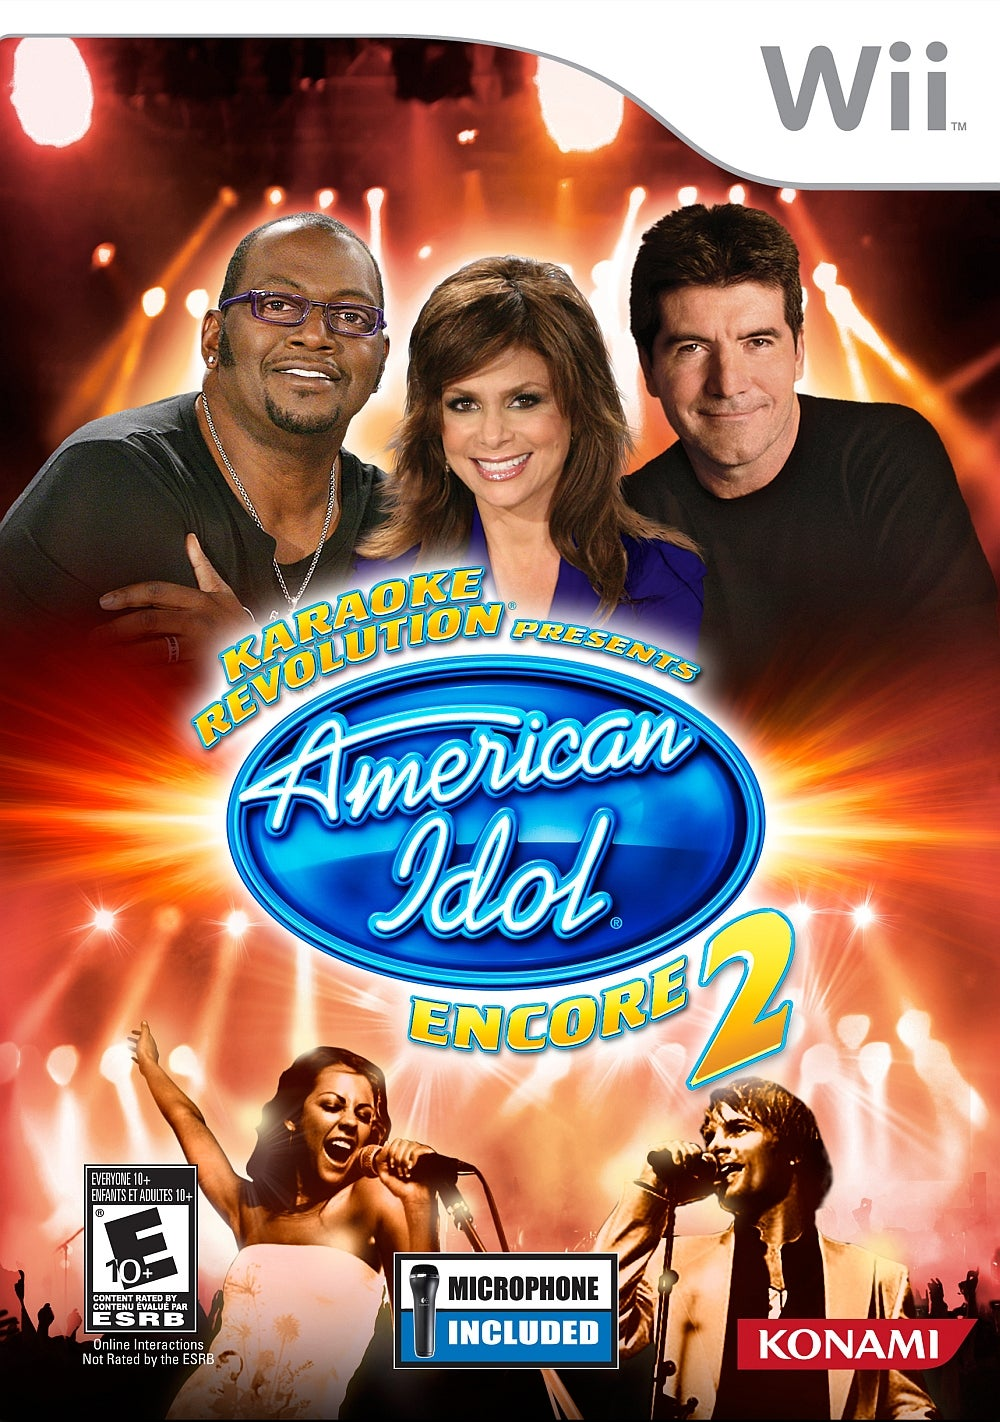 Karaoke Revolution Presents American Idol Encore 2 Wii IGN